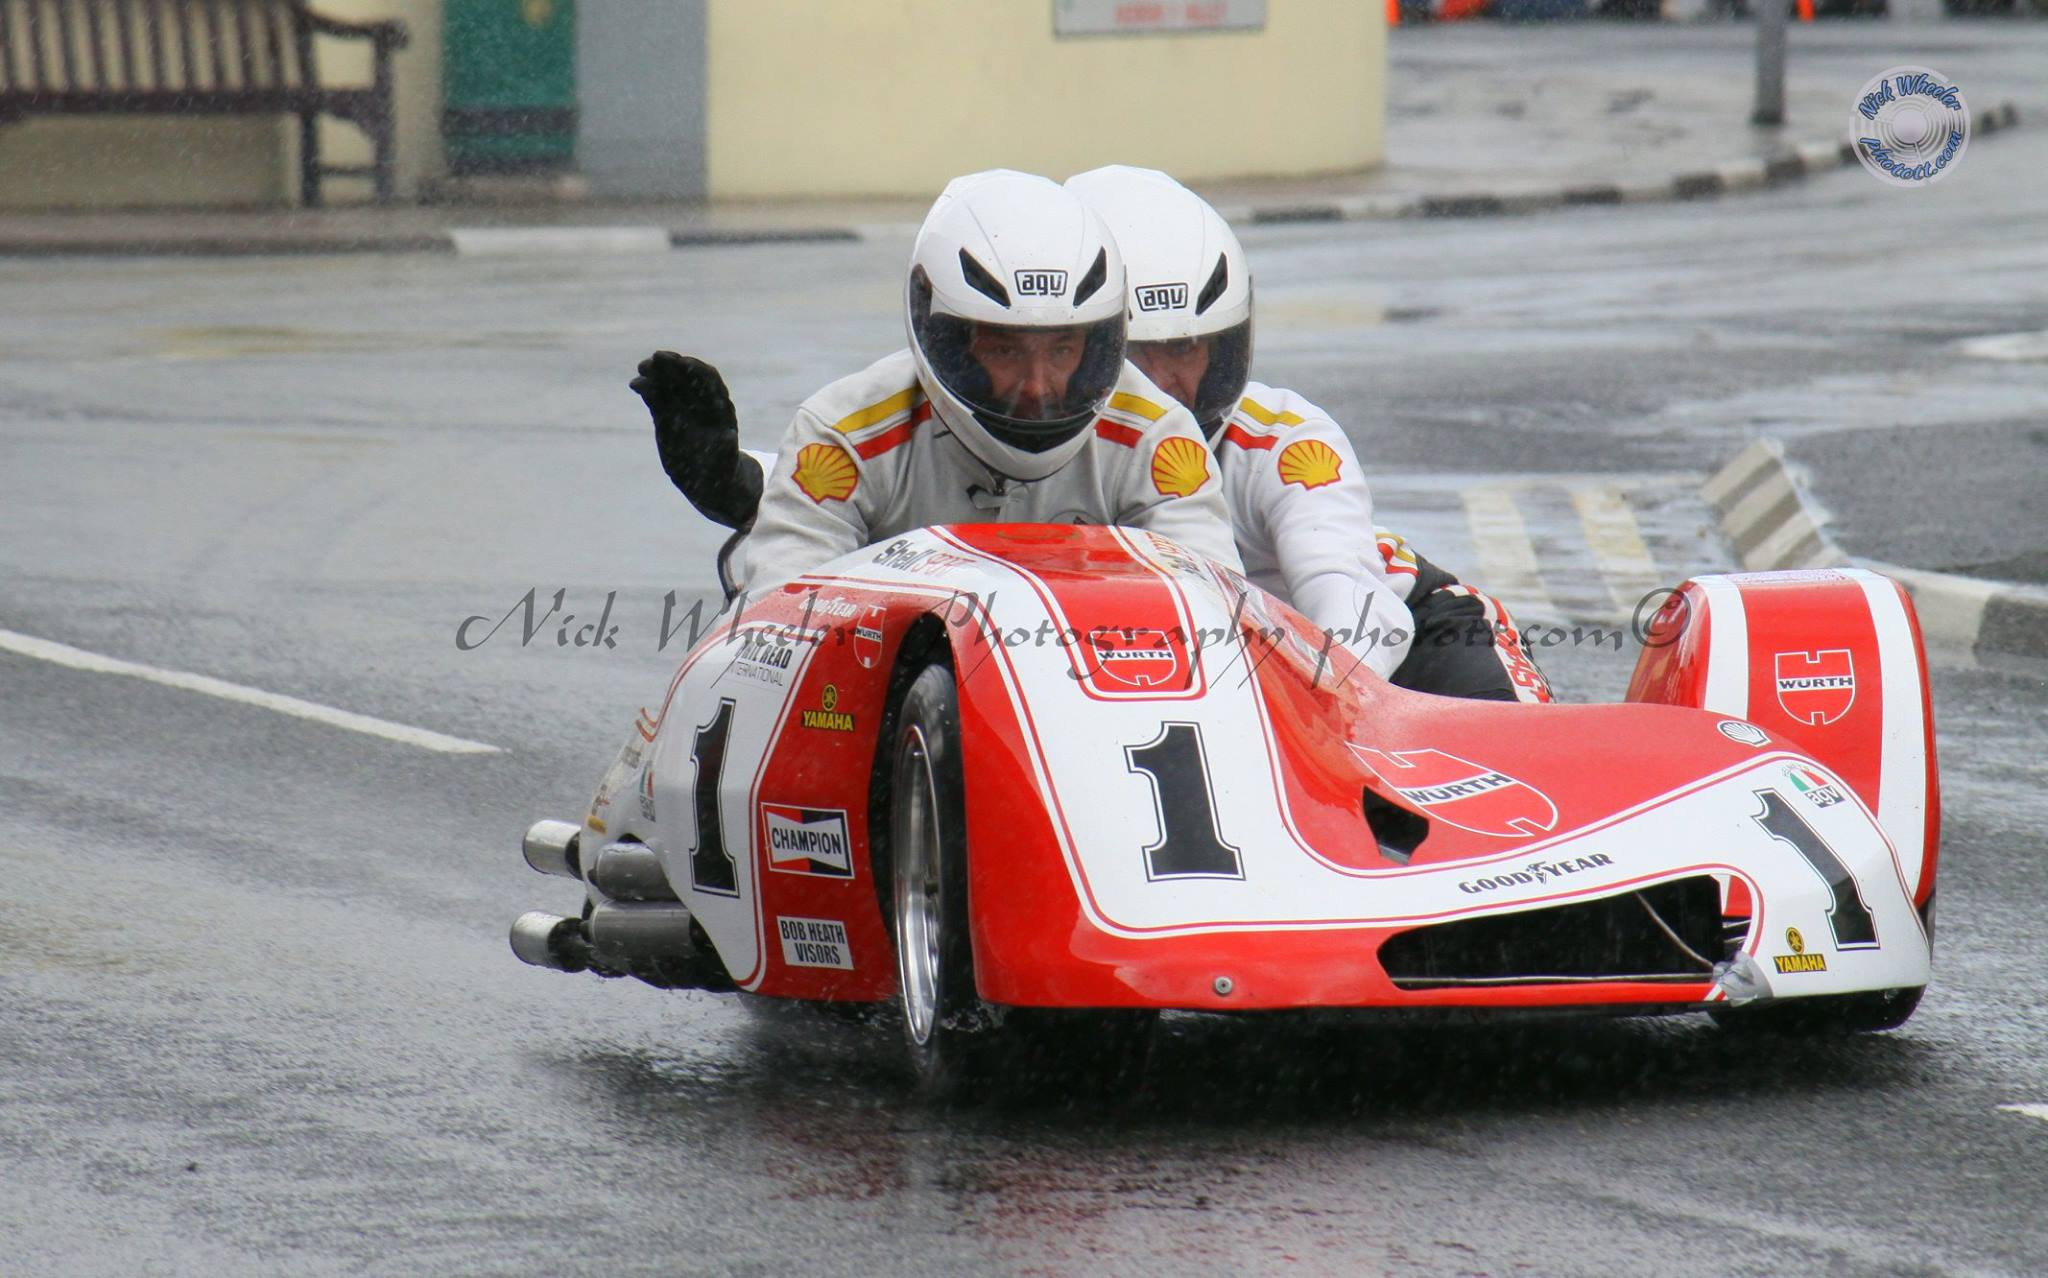 Post Classic Sidecar Race Potential For Pre TT Classic Meet